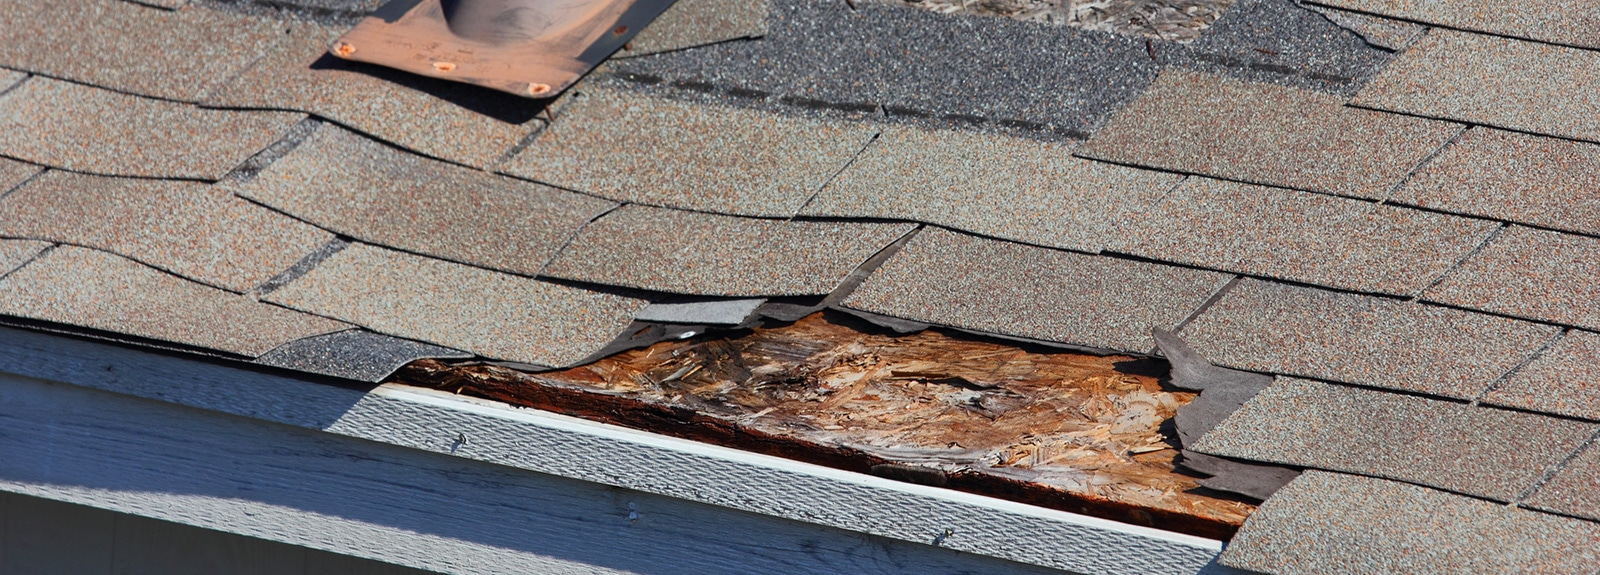 Roof Repair in Gainesville, FL